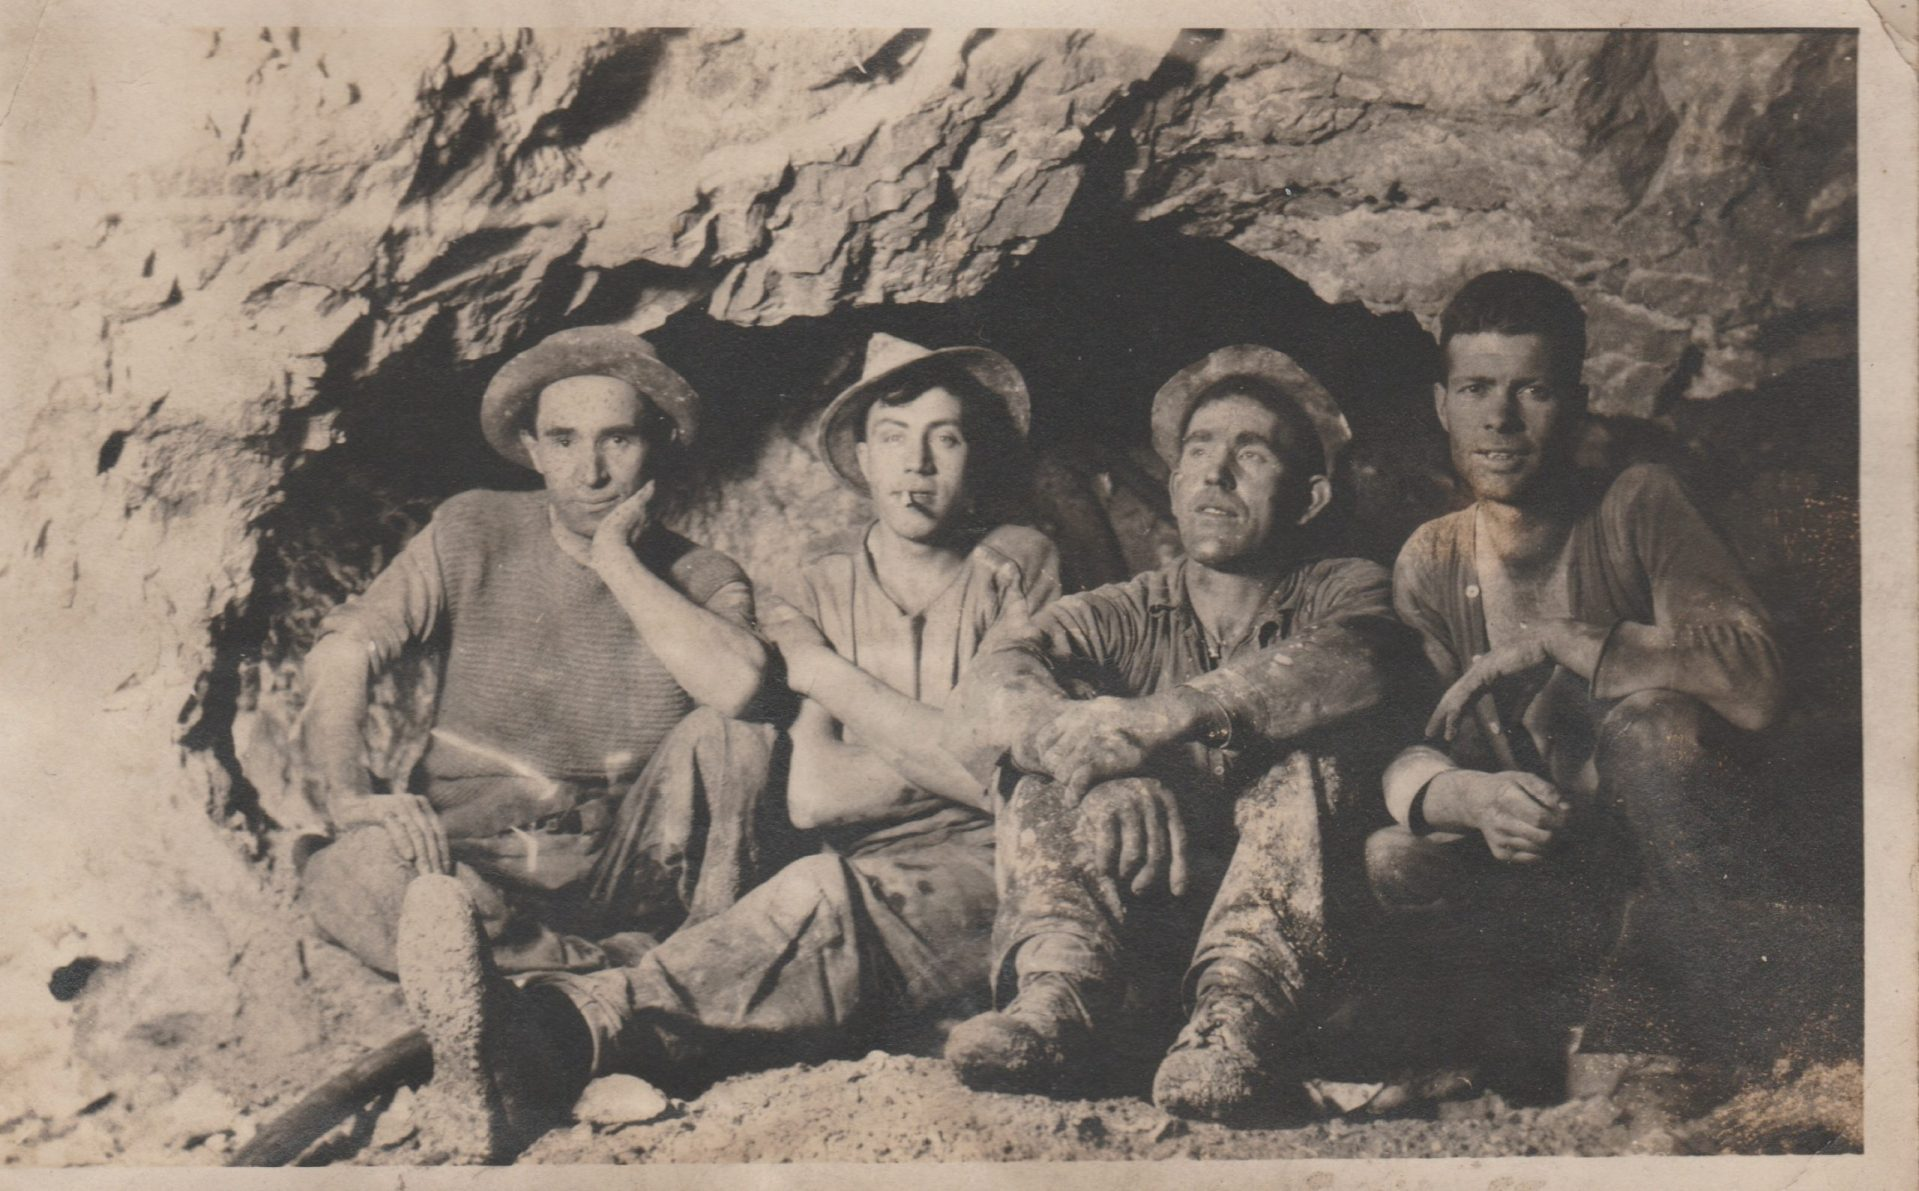 Charles Kerckhove, second from left, with other miners working the Mac Namara Mine in Tonopah in 1921.